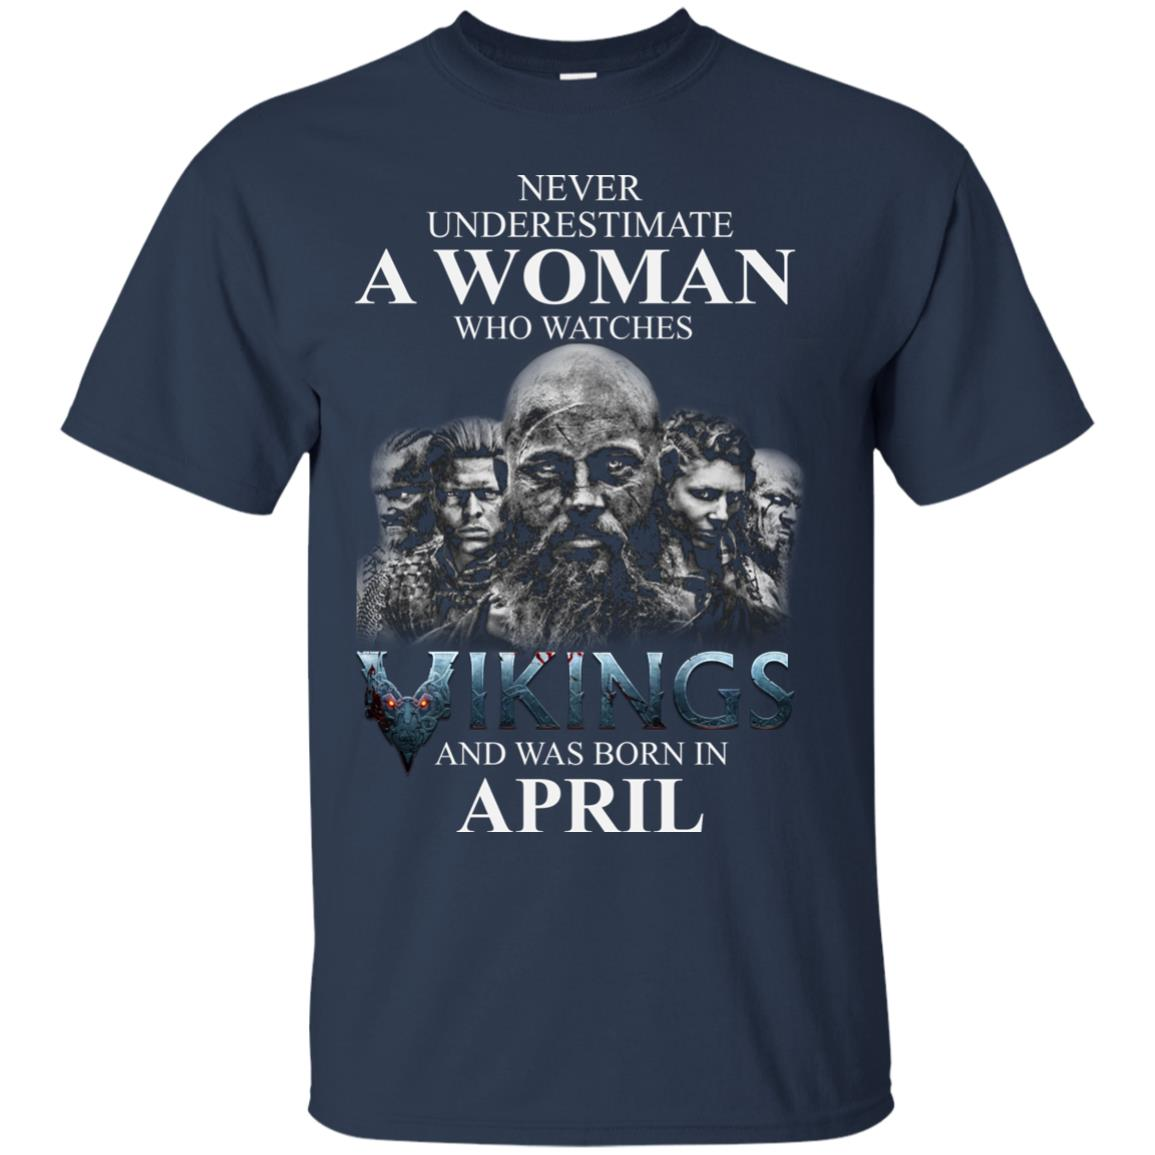 image 1316 - Never Underestimate A woman who watches Vikings and was born in April shirt